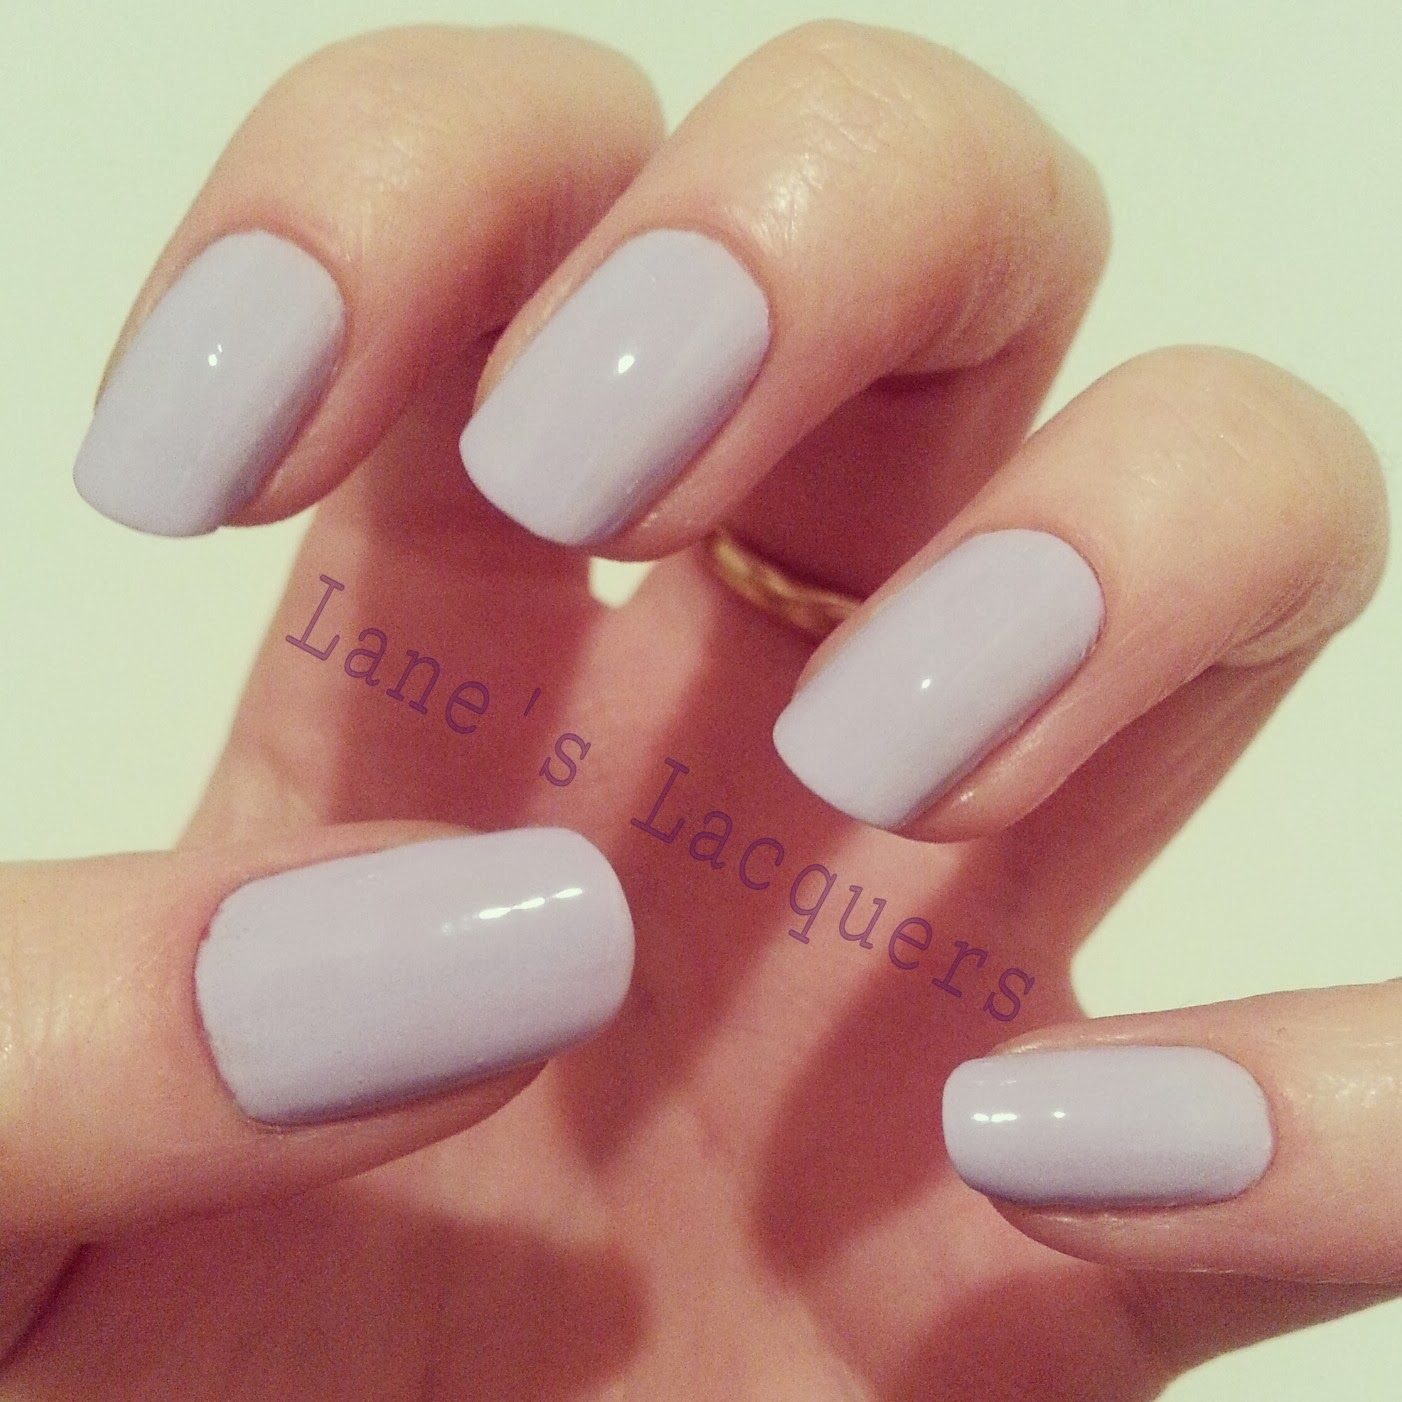 models-own-hypergel-lilac-sheen-swatch-manicure